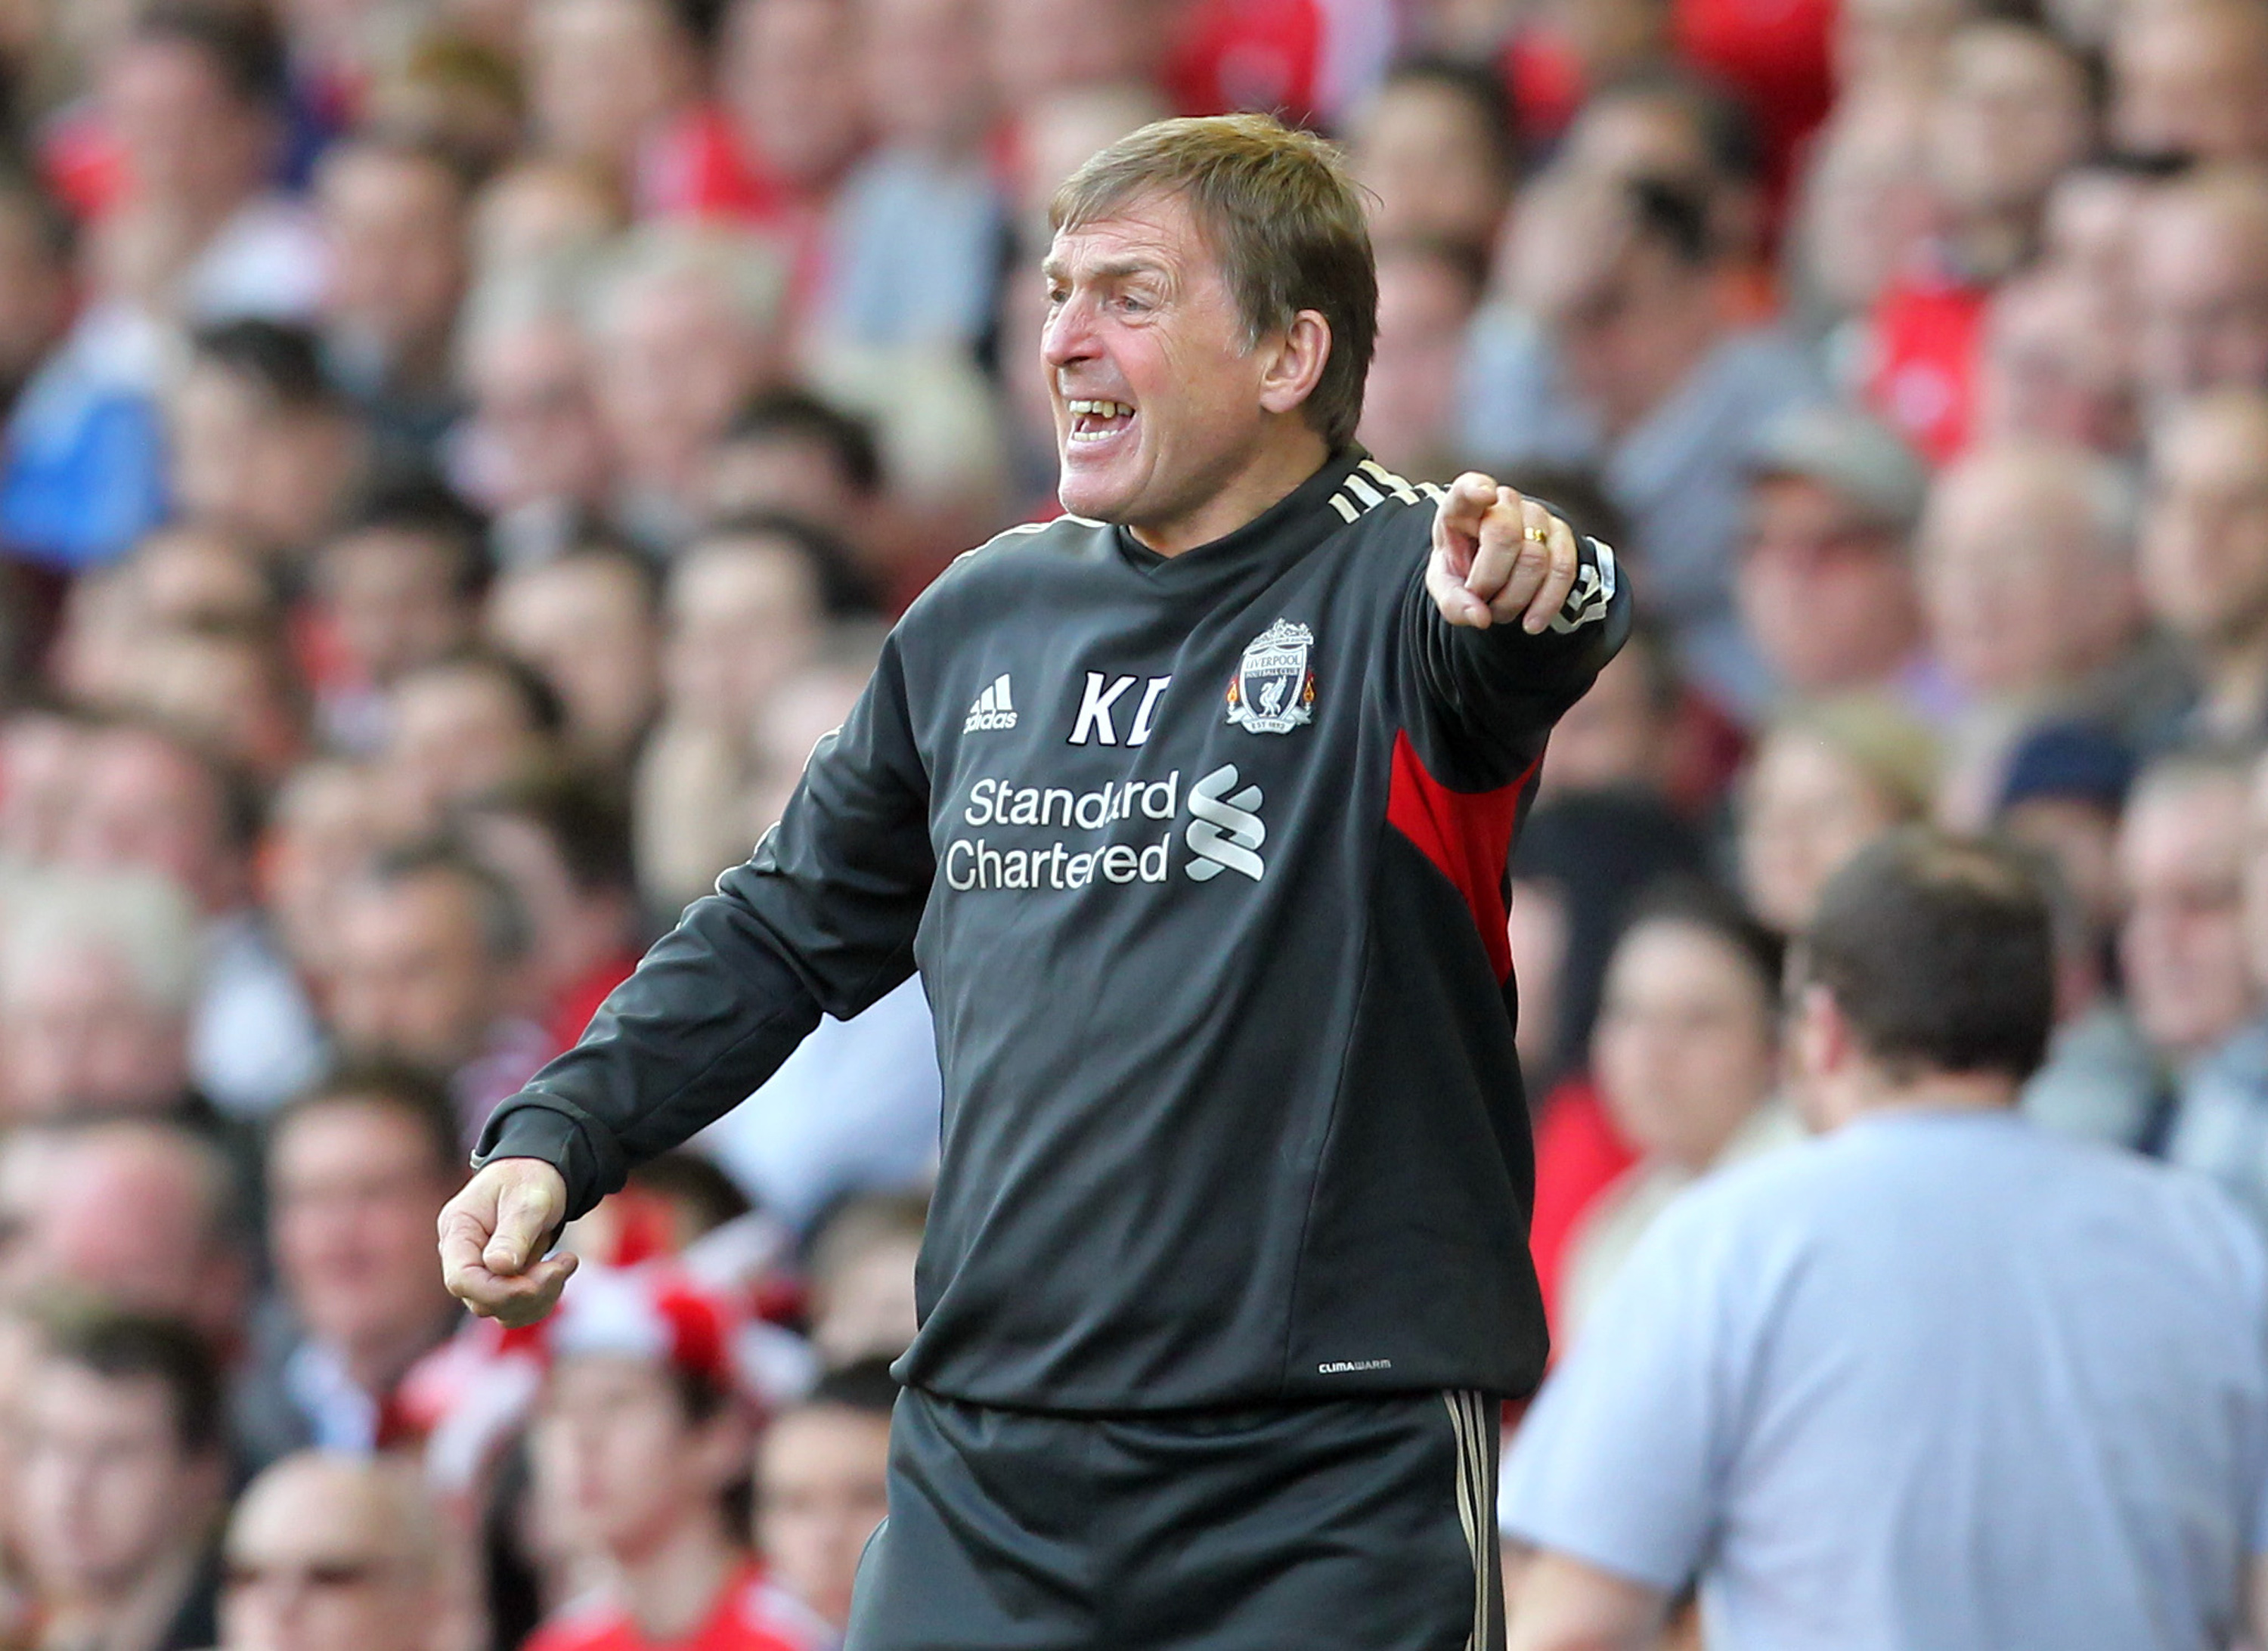 Kenny Dalglish's Liverpool return as director leaves Reds fans undecided